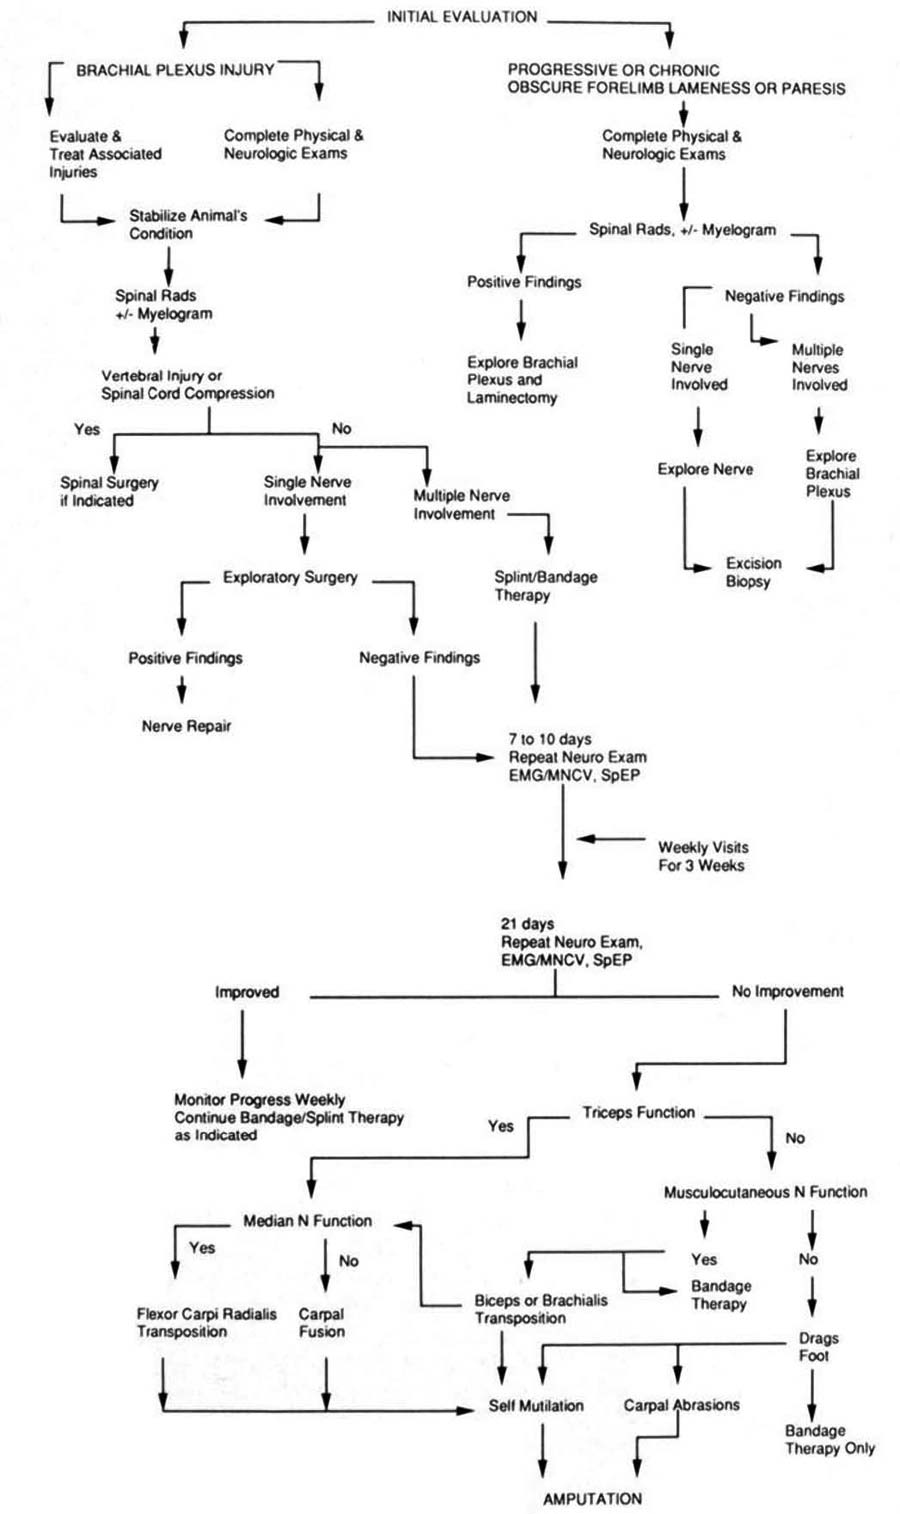 Algorithm of serial evaluation and treatment options for brachial plexus injuries